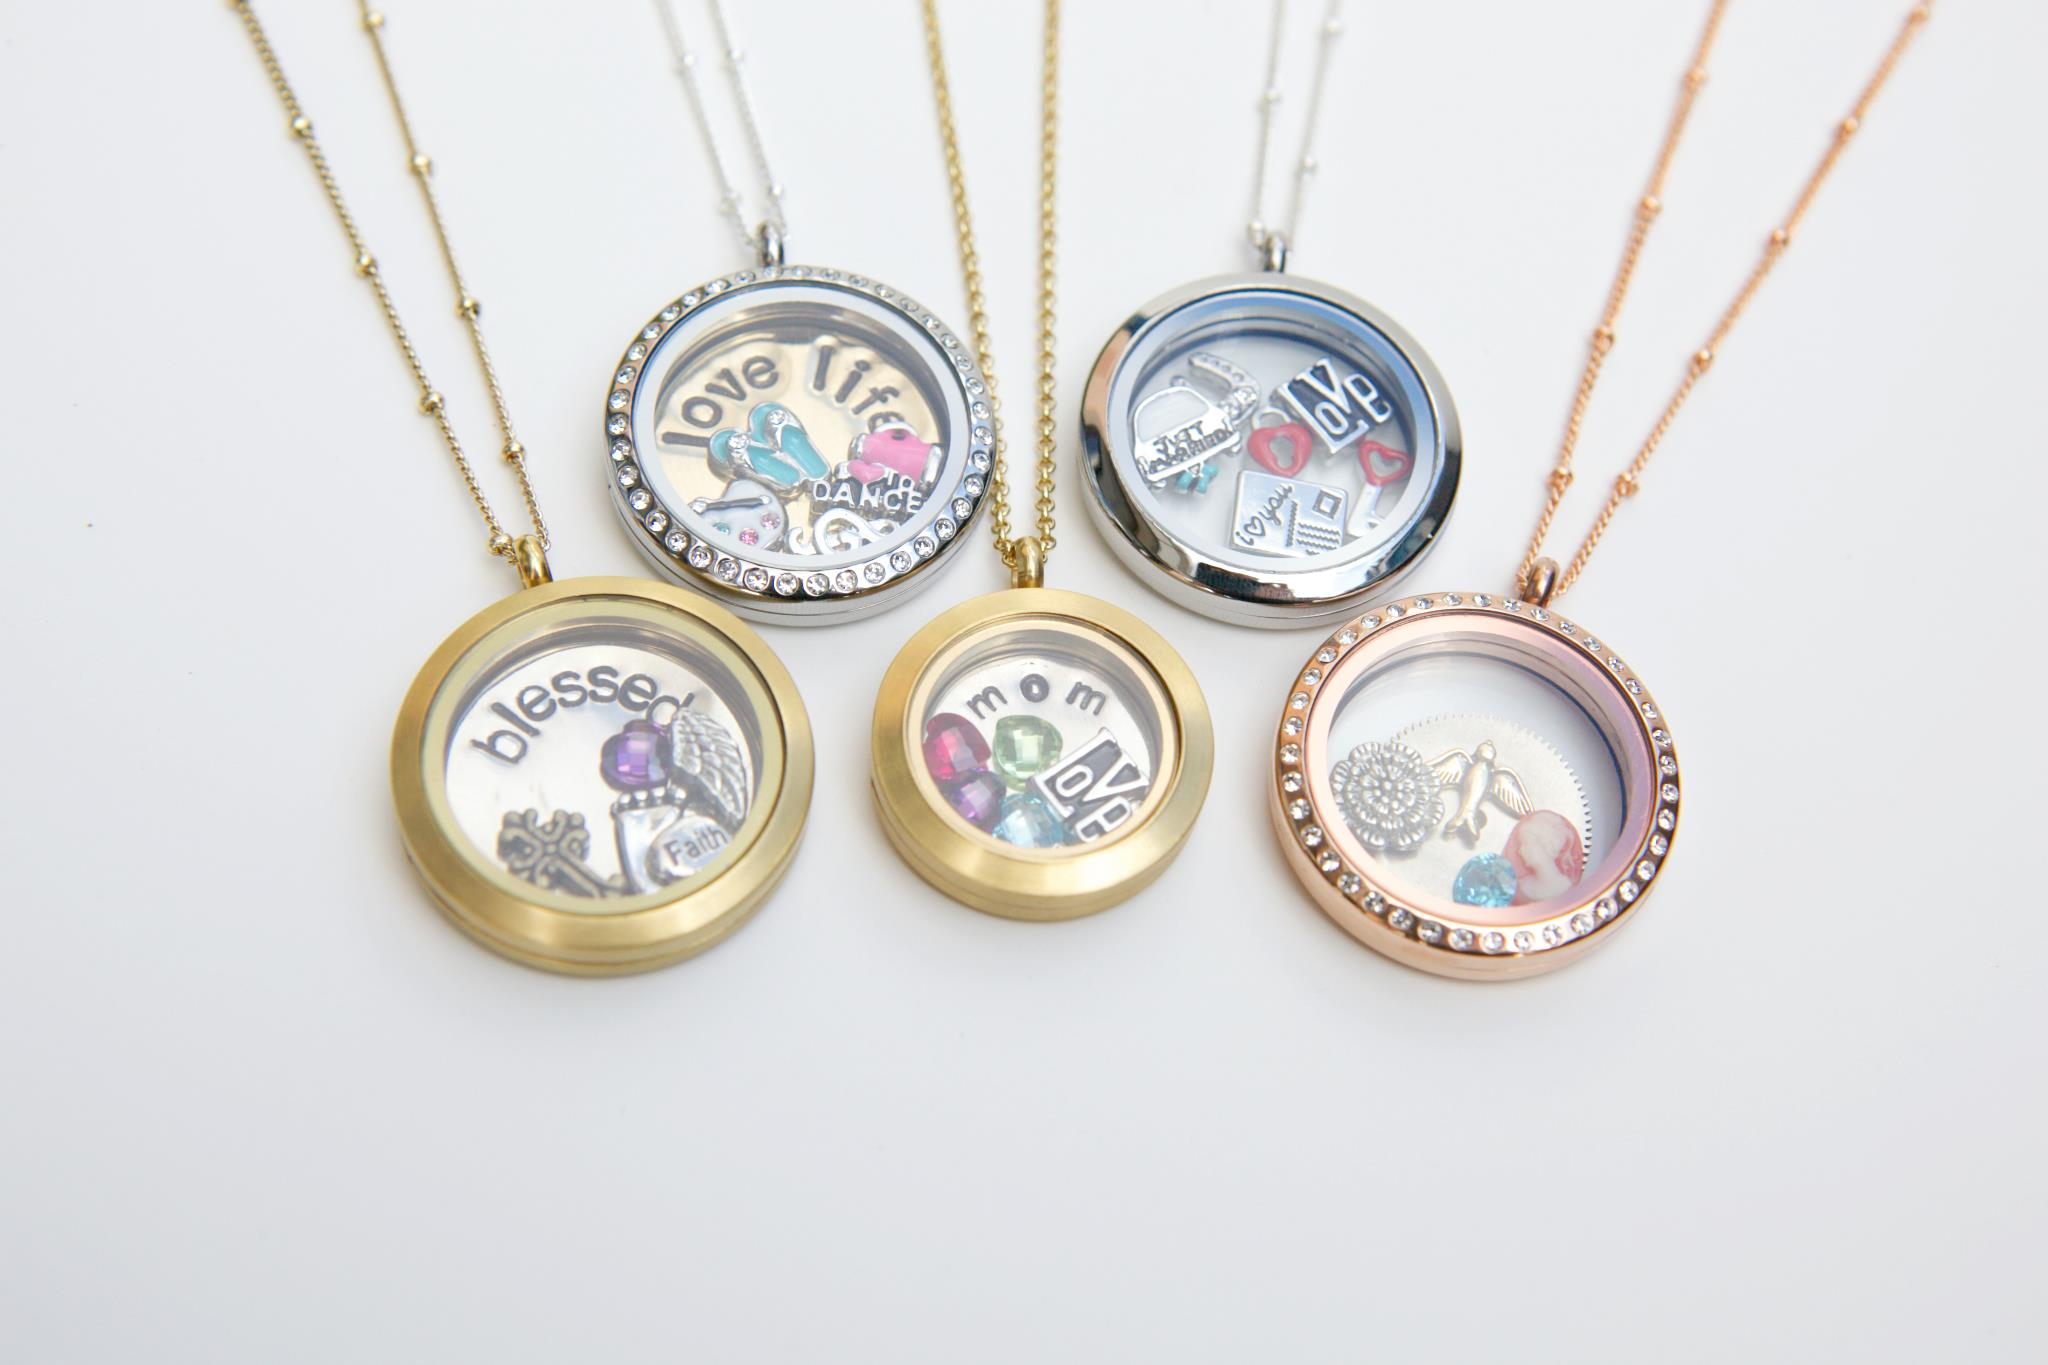 Buy origami owl jewelry online charms necklace products origami owl locket pendants jeuxipadfo Gallery